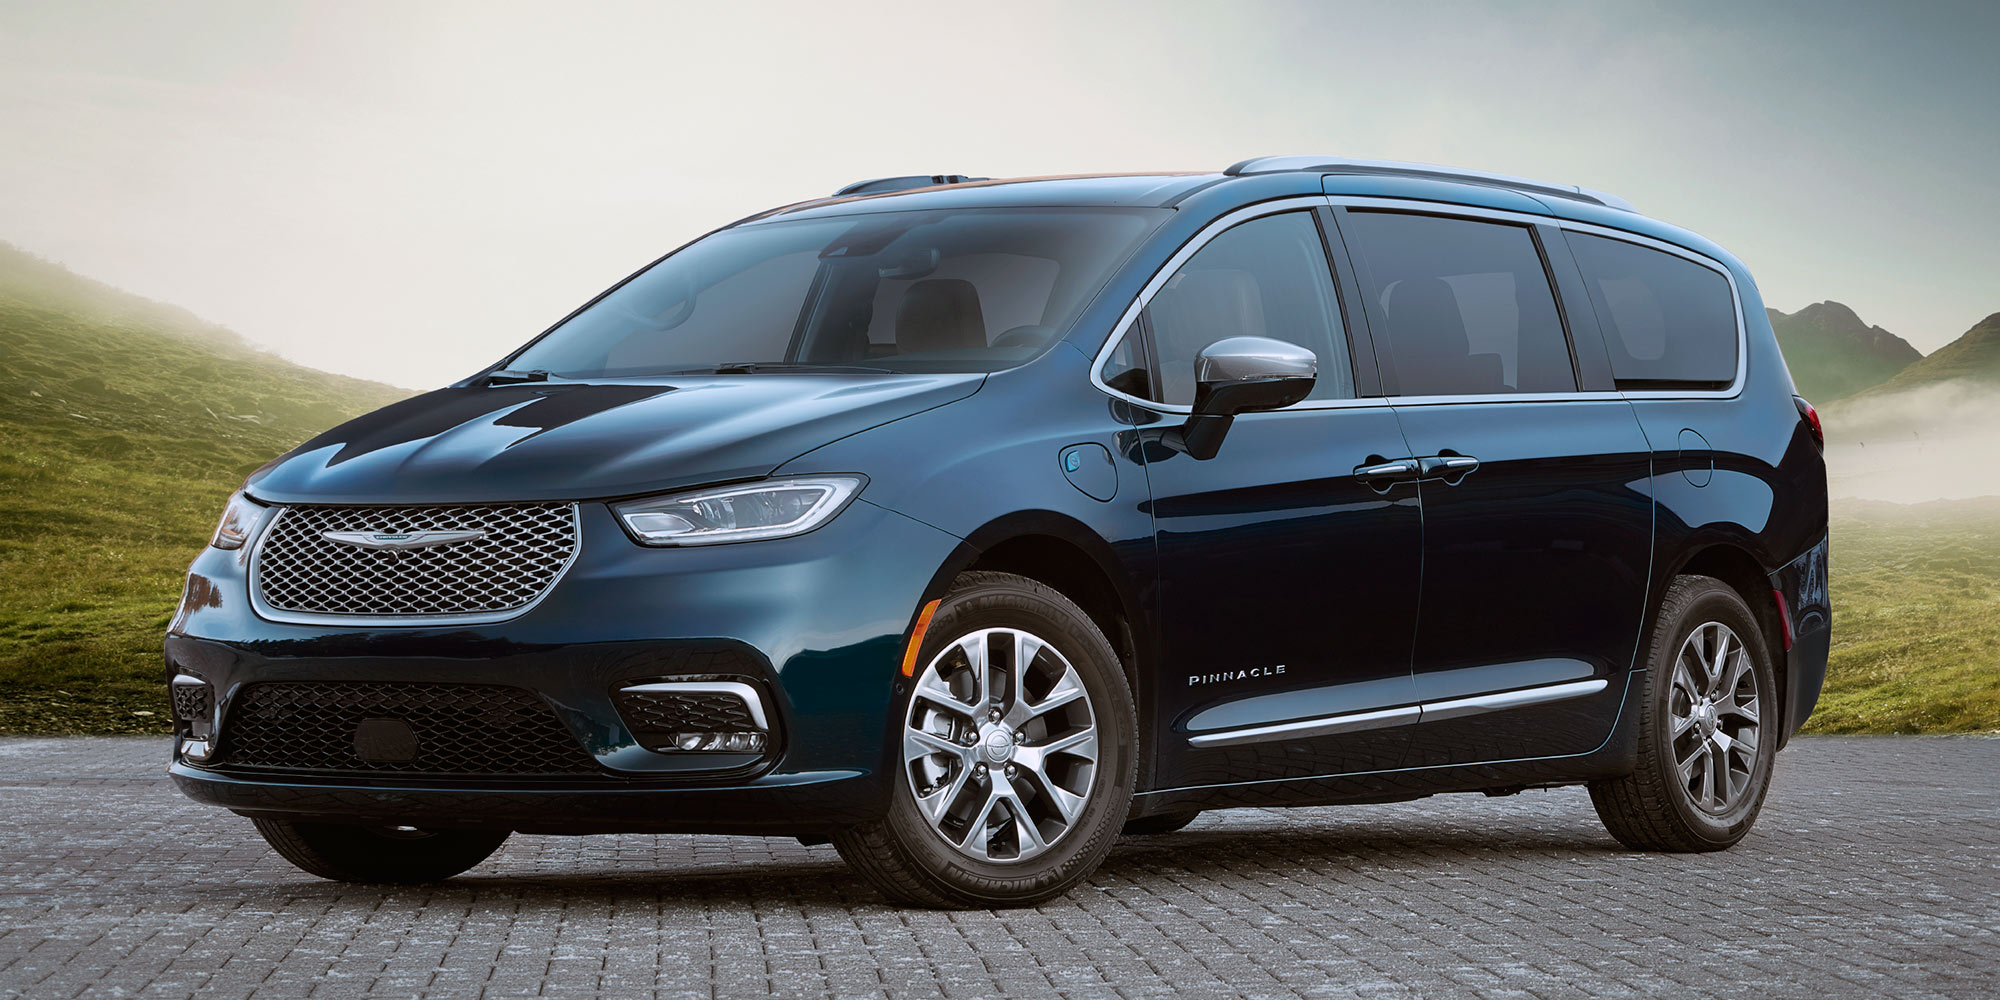 2021 Chrysler Pacifica Hybrid, a plug-in